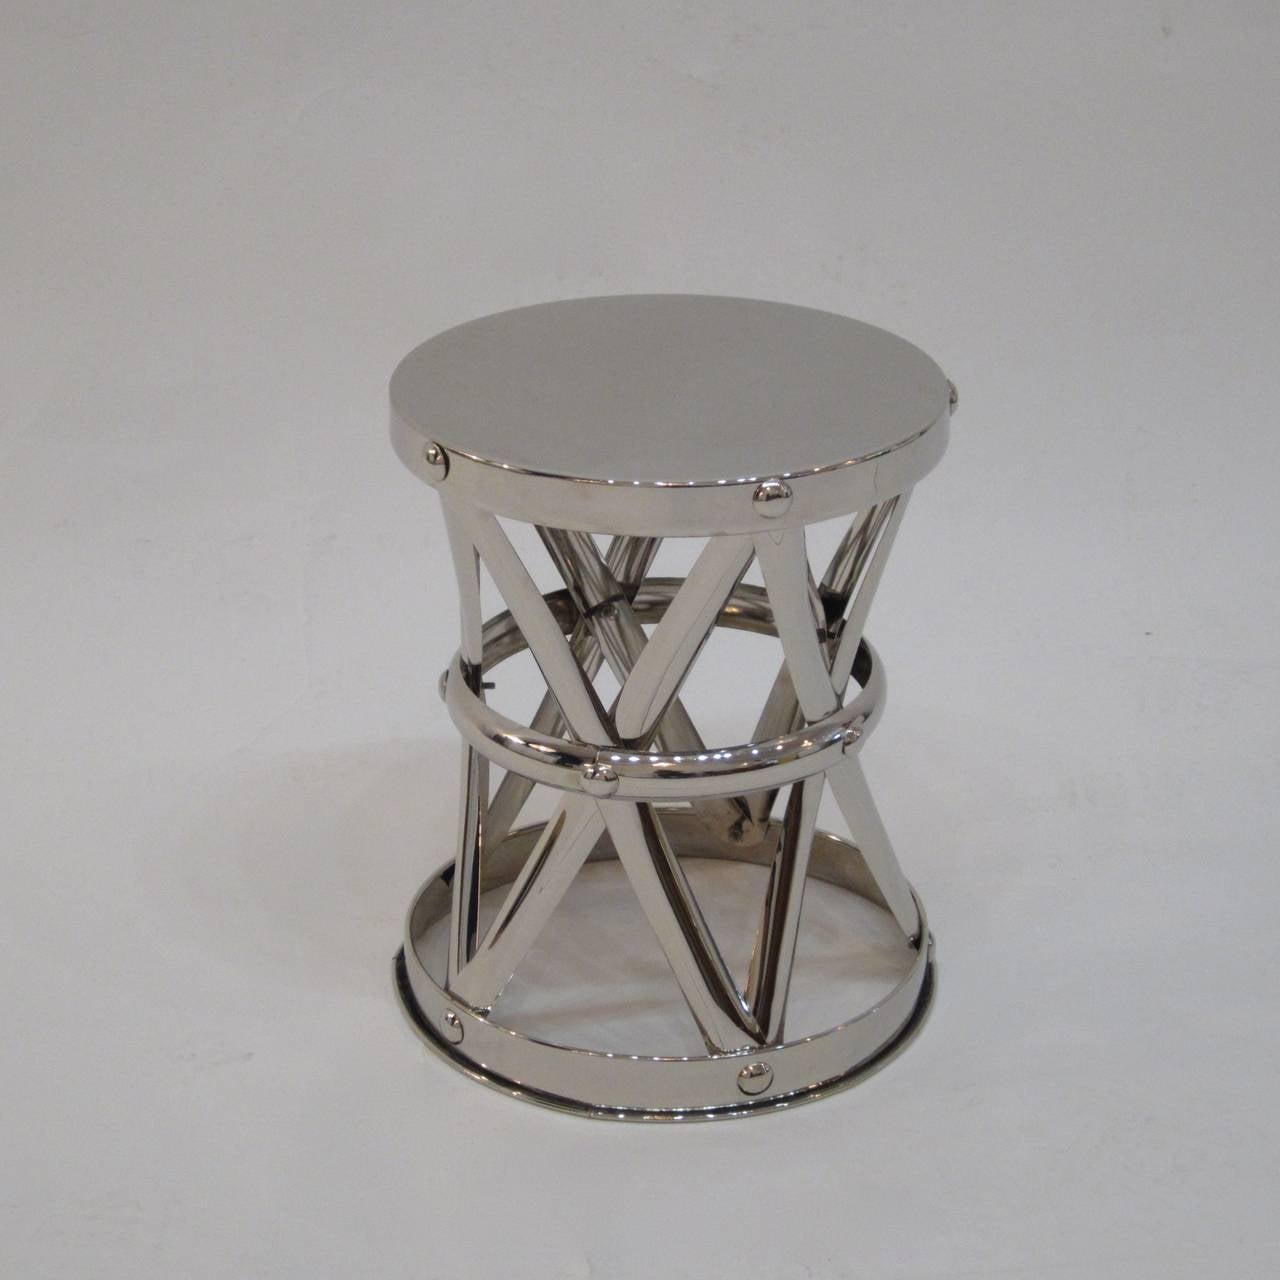 Classic X-frame criss-cross garden stool in nickeled brass. A great side table to hold a drink or magazine.